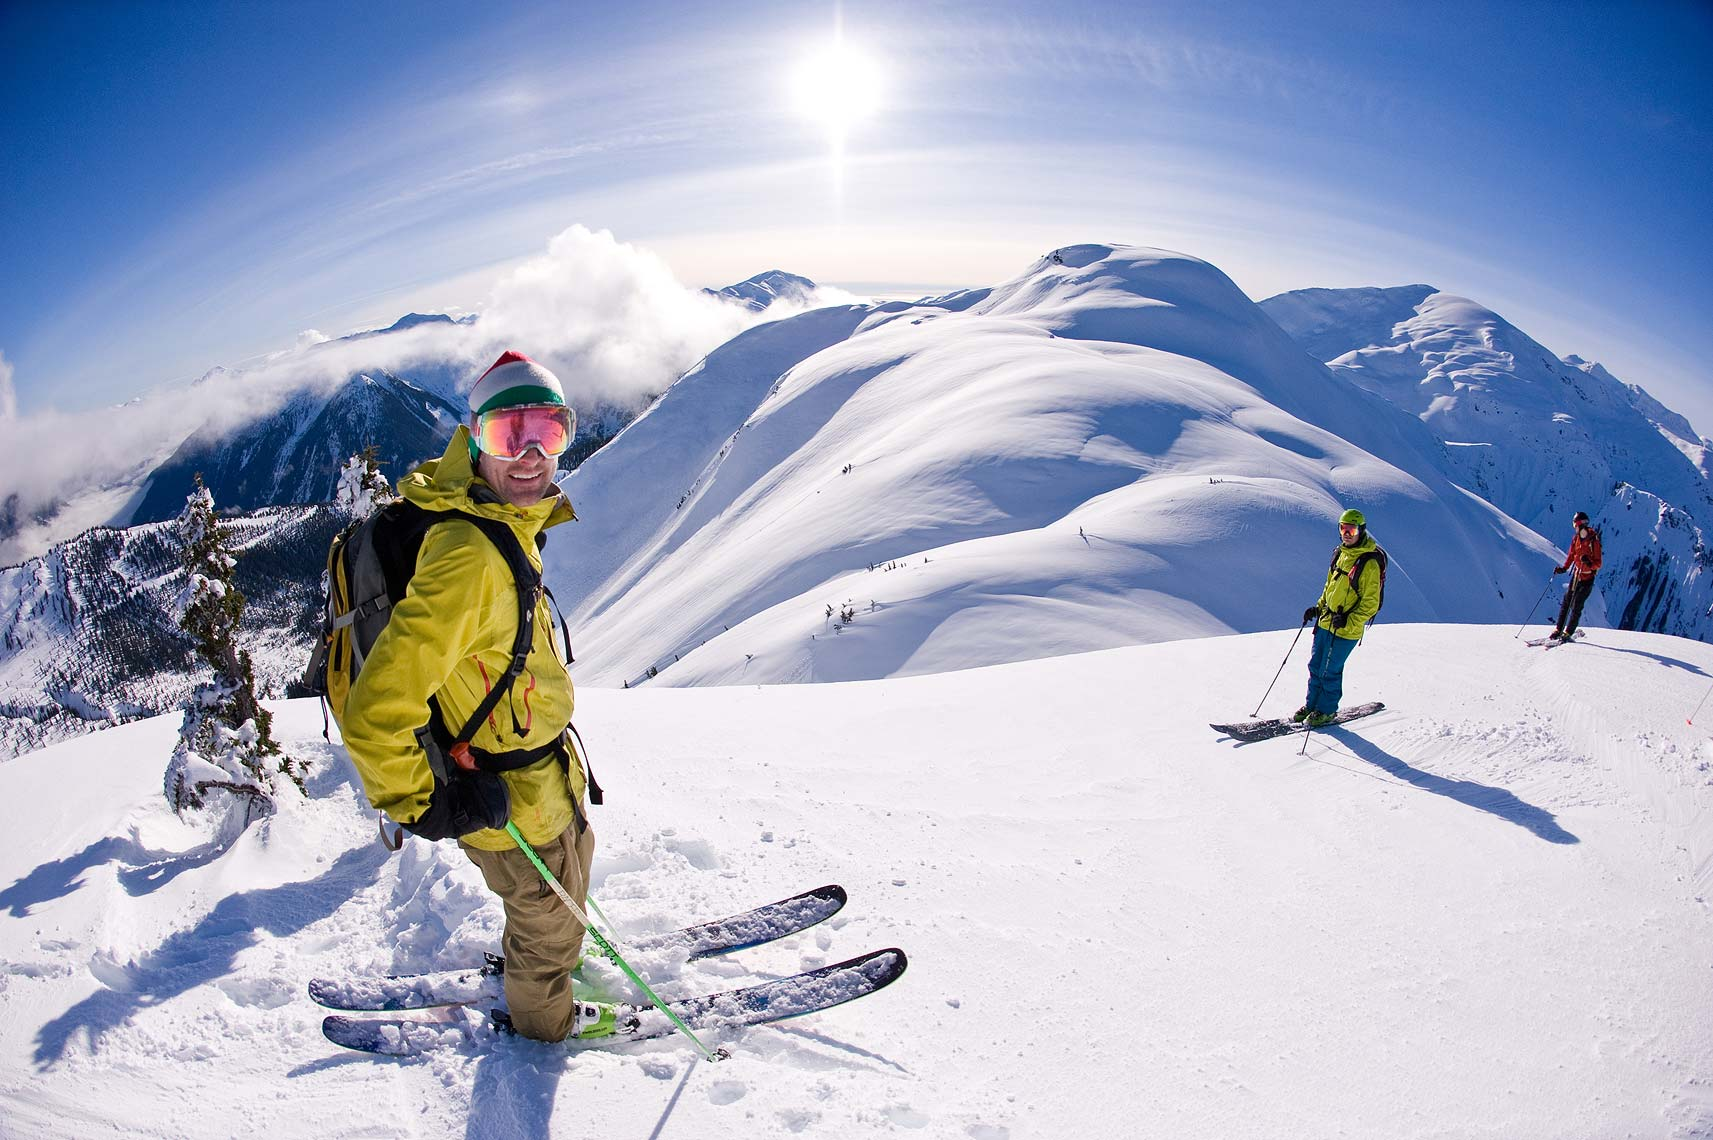 Terrace backcountry skiers